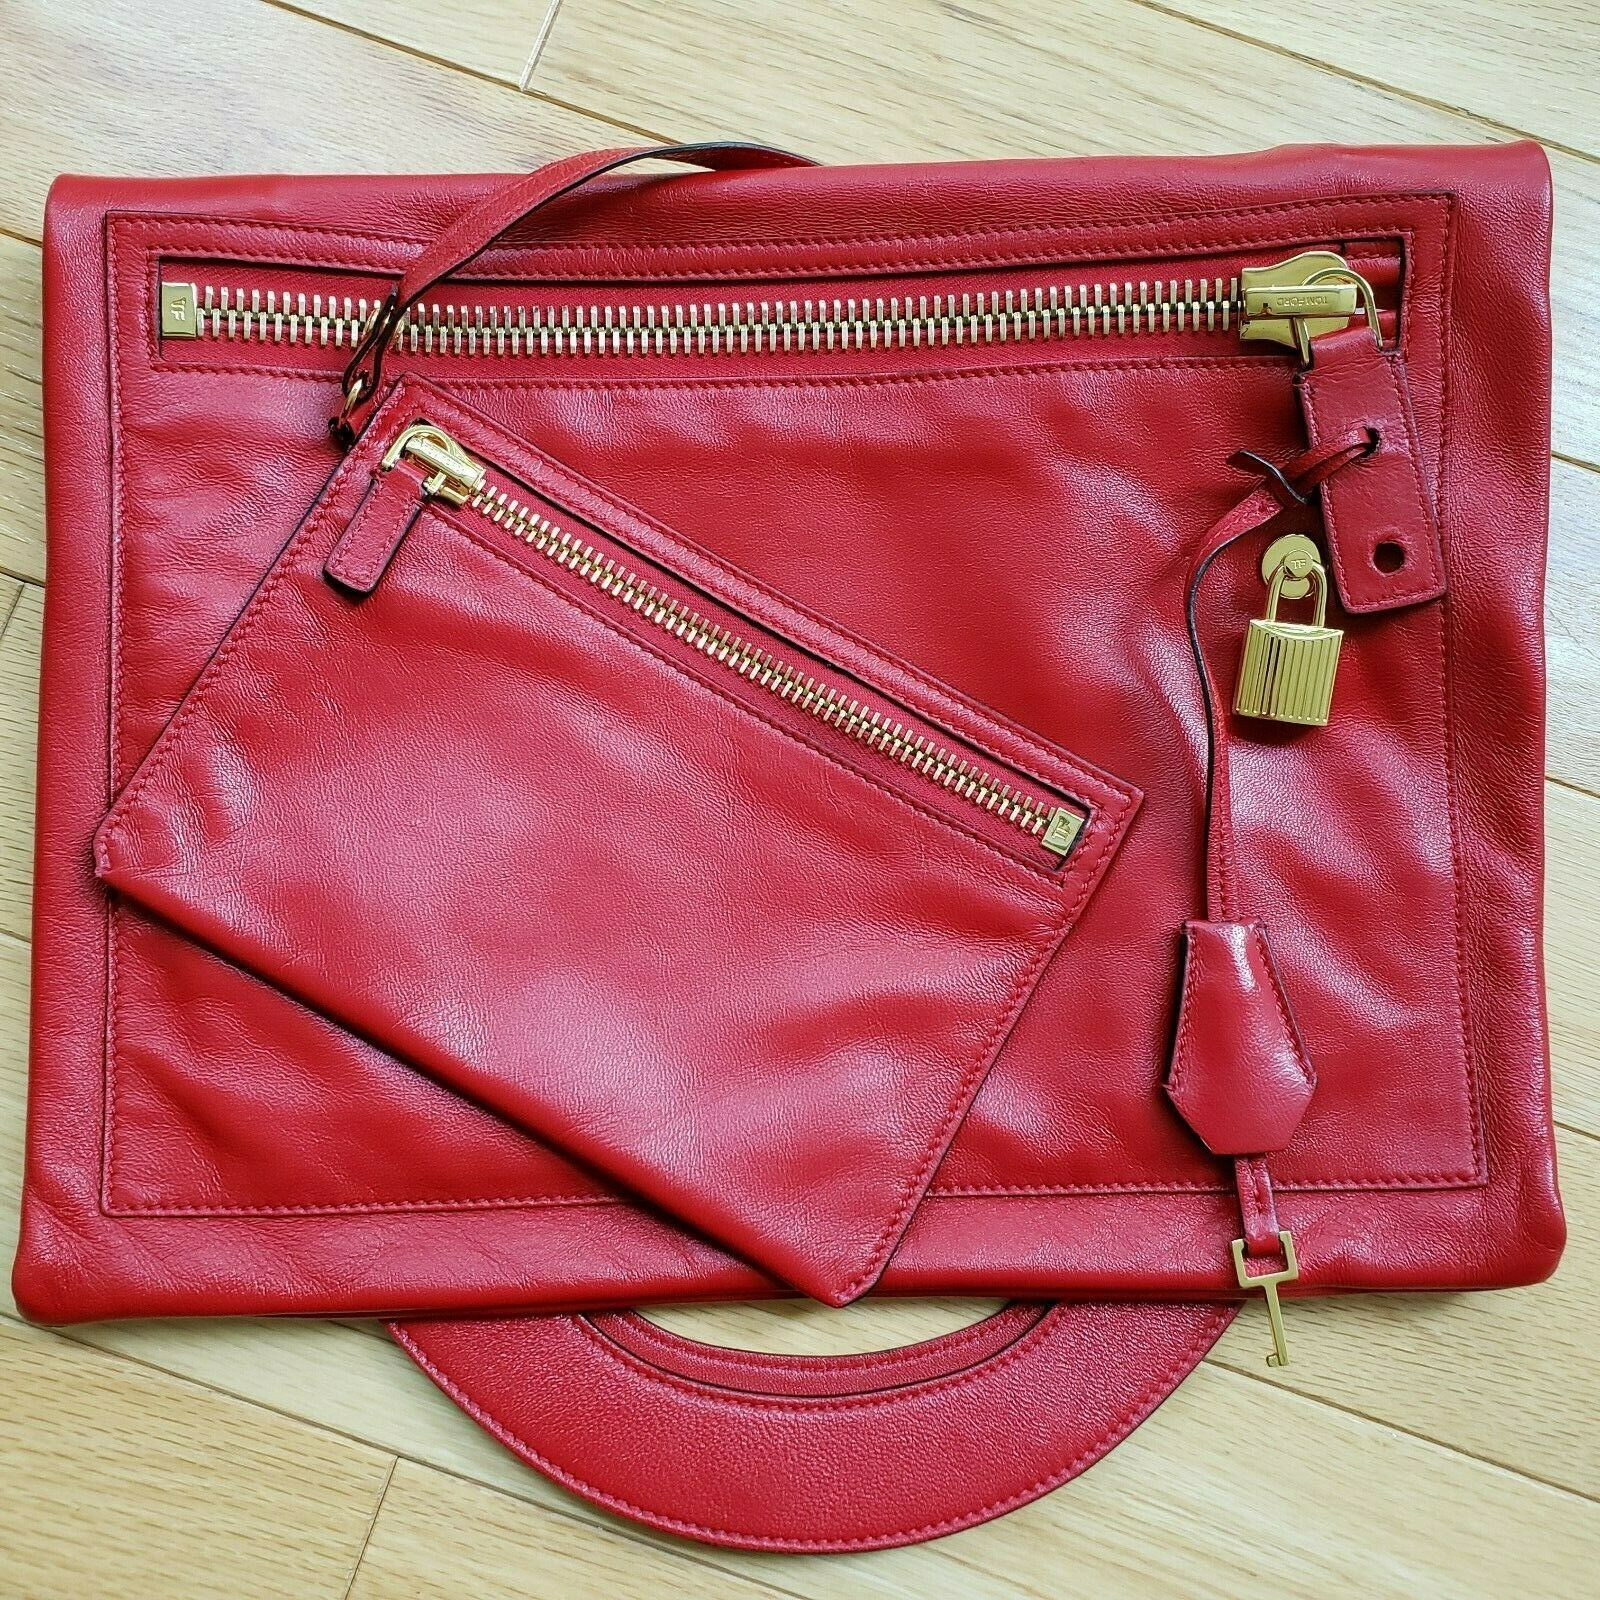 NEW $1990 Tom Ford Gucci Lambskin Alexia Bag Convertible Clutch Made in Italy